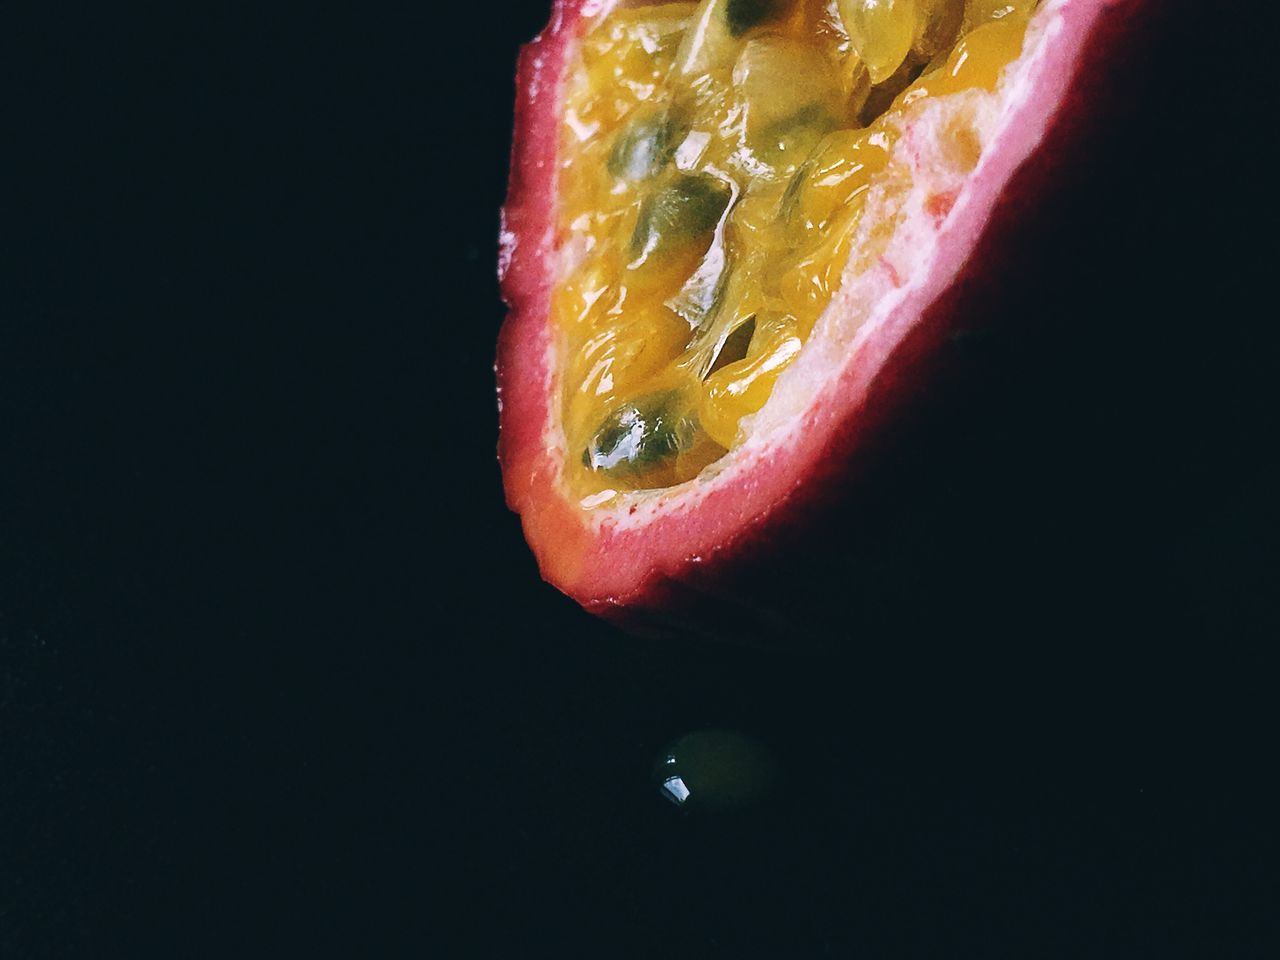 Sliced Passion Fruit On Black Background Fruit Healthy Eating Freshness Food And Drink Black Background Studio Shot No People Tropical Fruit Raw Food SLICE Food Cross Section Close-up Indoors  Passion Fruit Ready-to-eat Halved Sweet Food Still Life Drop Juicy Horizontal Photography Color Image Yellow